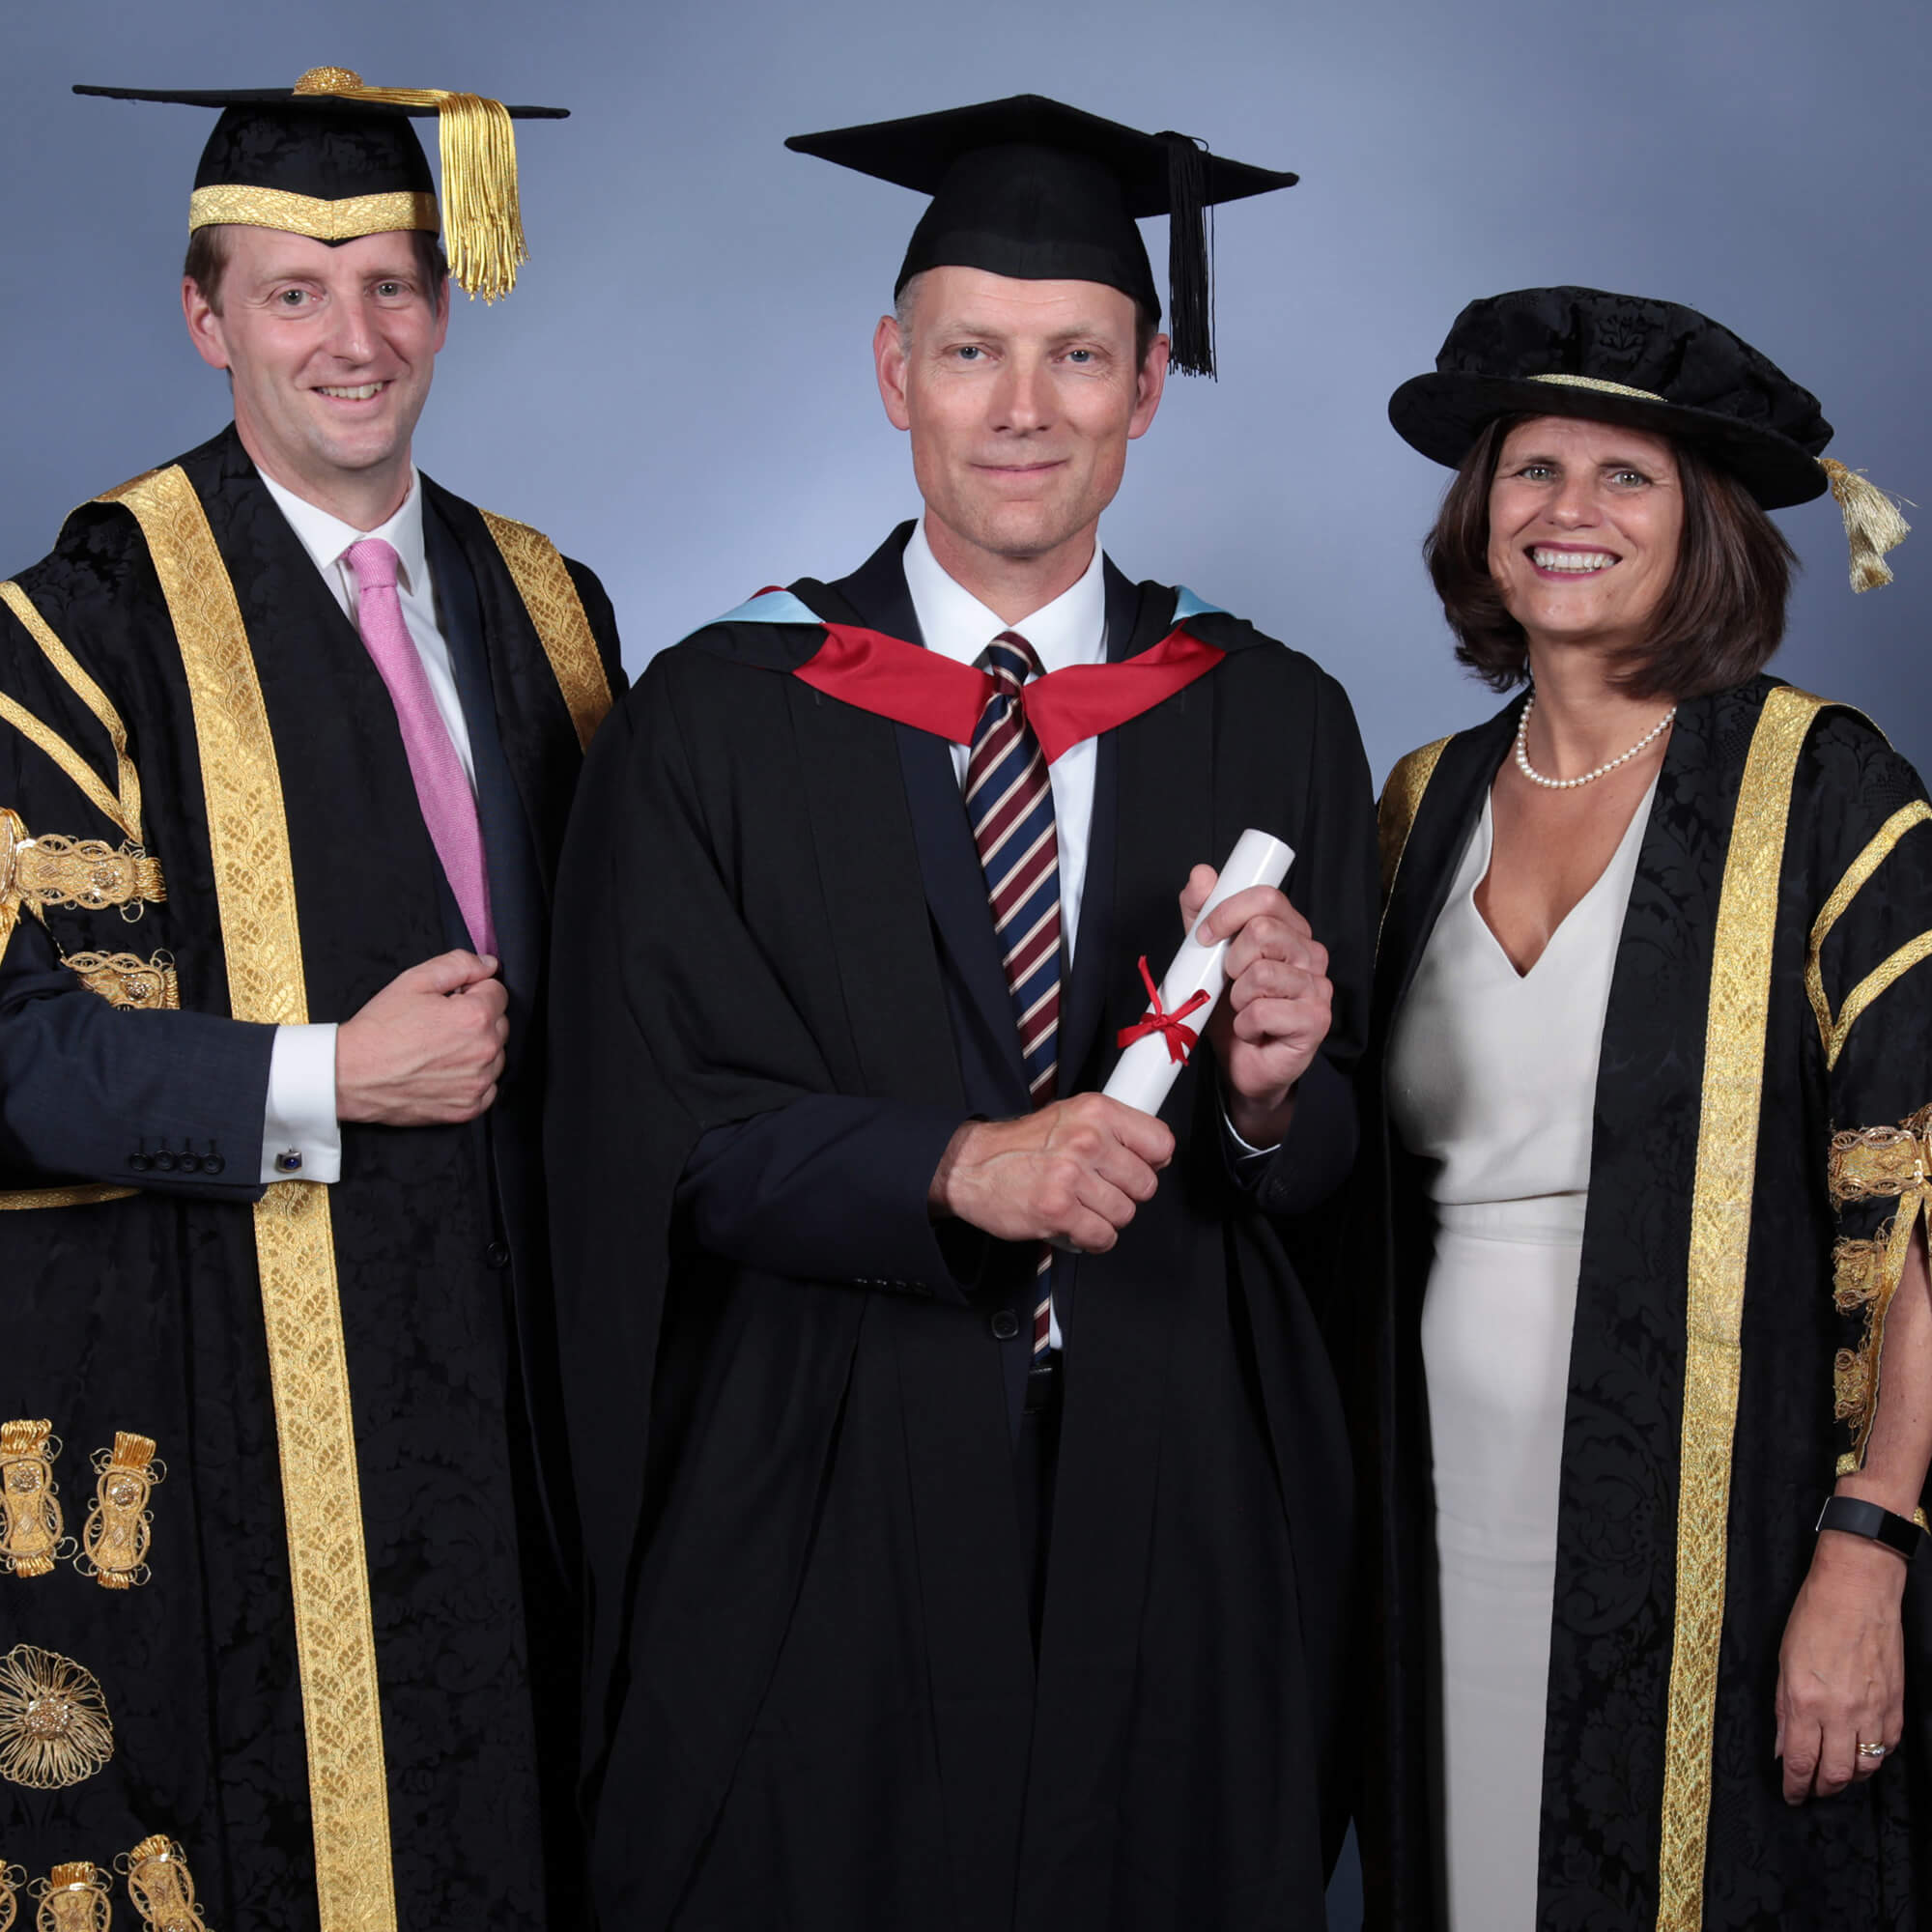 Robin Gillespie graduation photo with Vice Chancellor Kath Mitchell and Chancellor